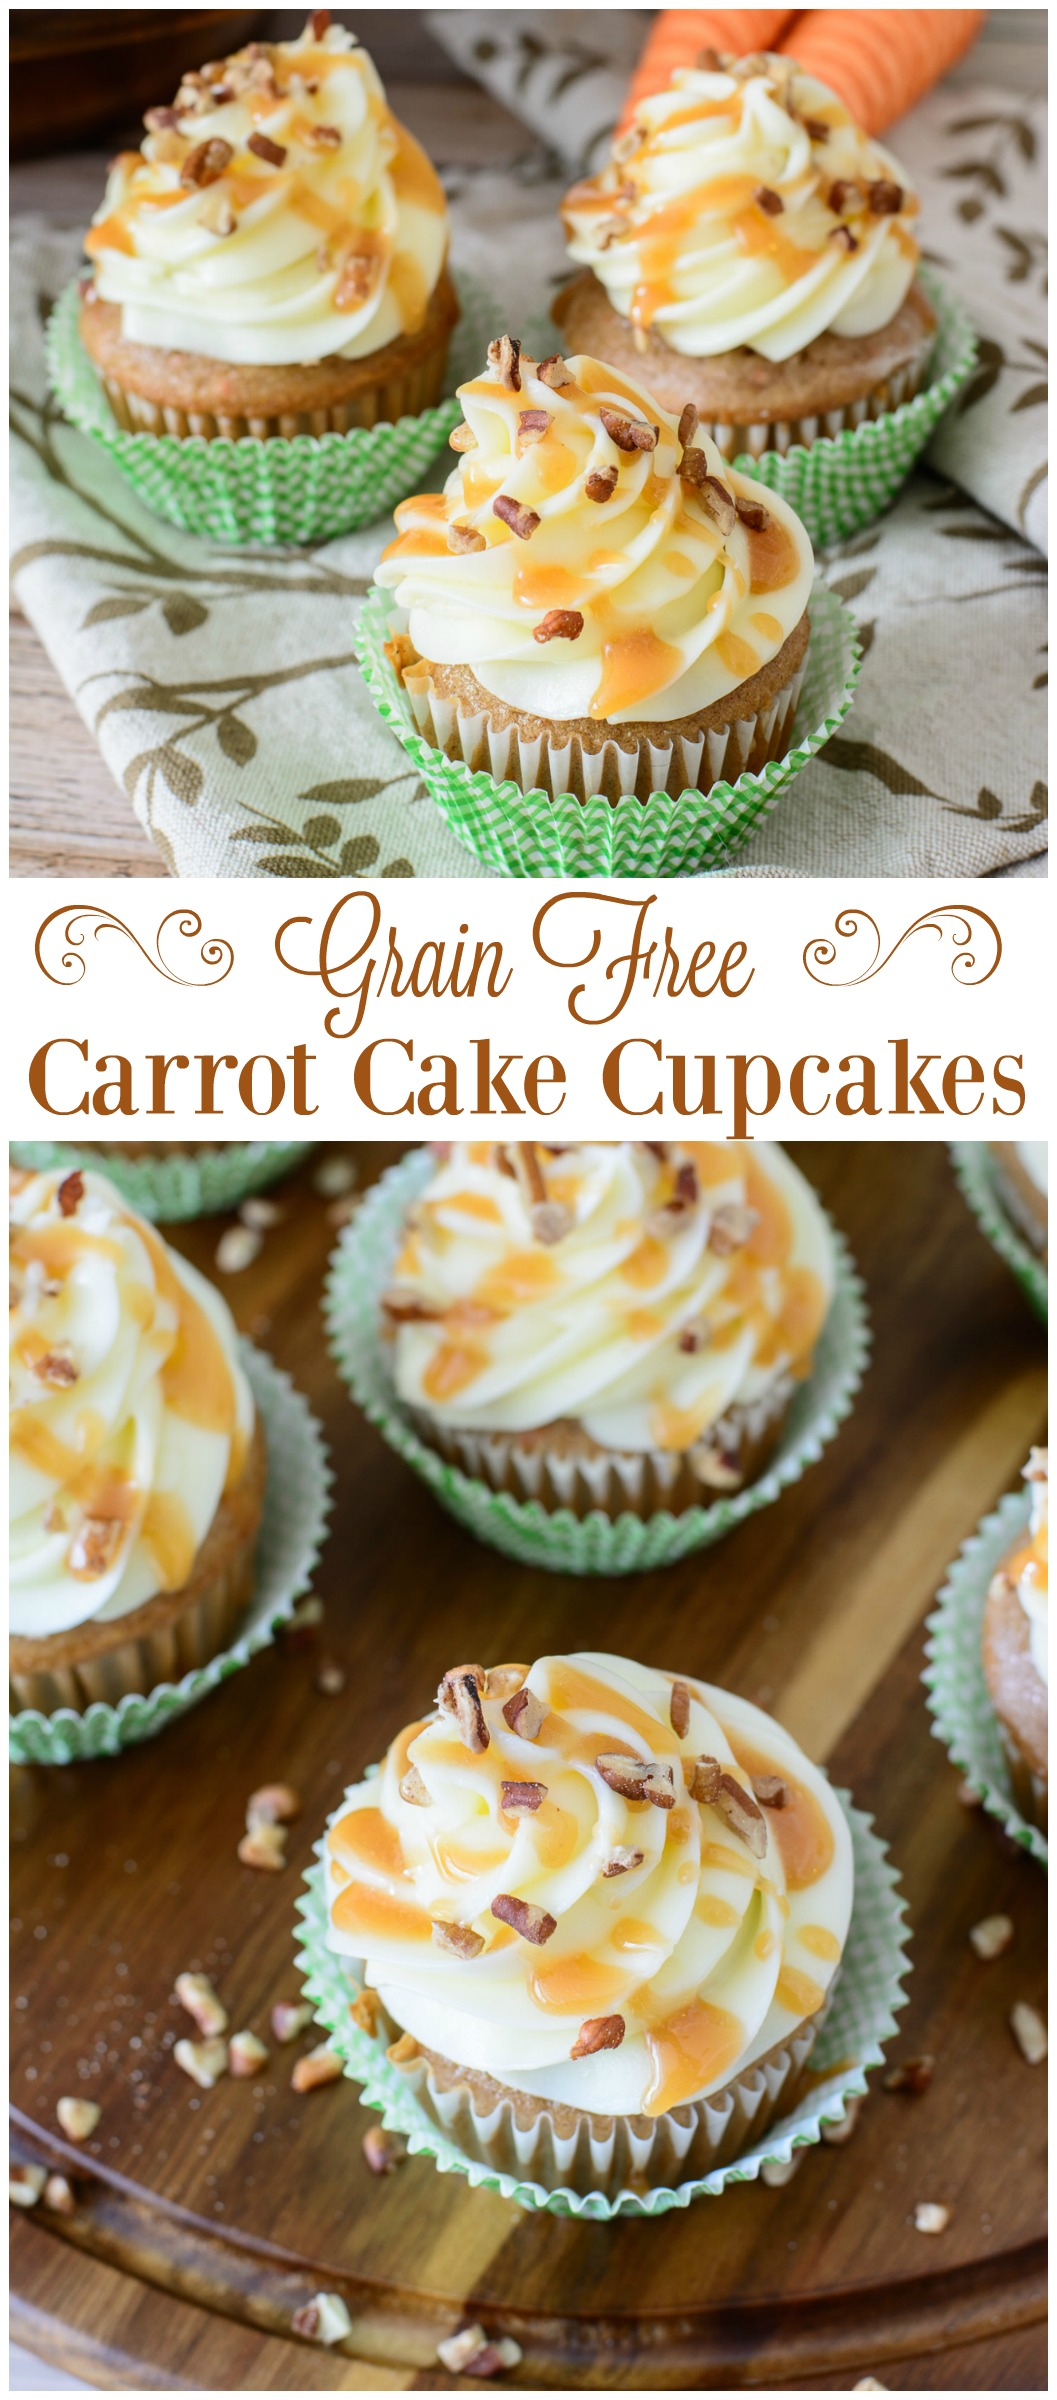 This irresistible grain free carrot cake cupcake recipe is so good and actually good for you. Sweetened with maple syrup and applesauce, it is my FAVORITE carrot cake recipe. You won't even know it's gluten free!